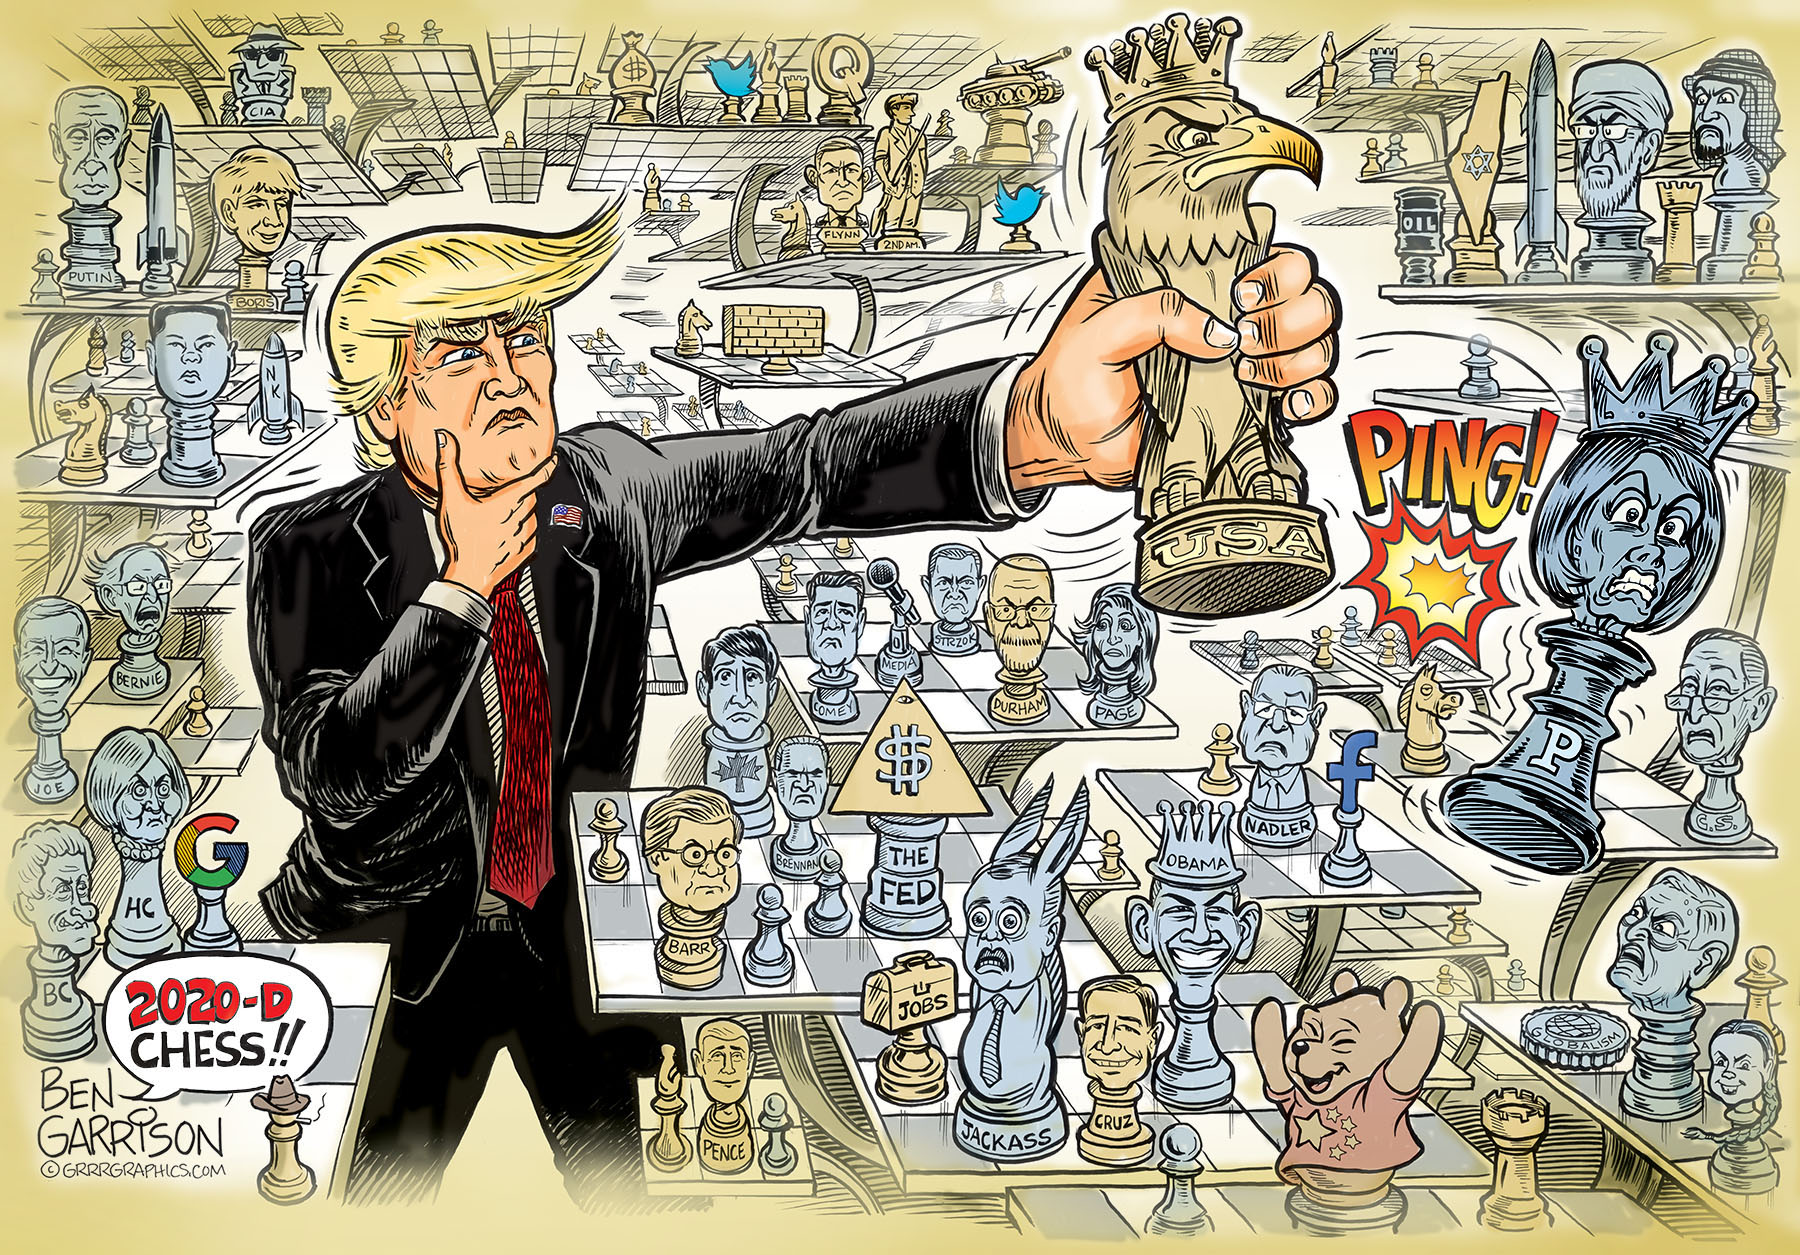 TRUMP IS THE MASTER OF 3D POLITICAL CHESS